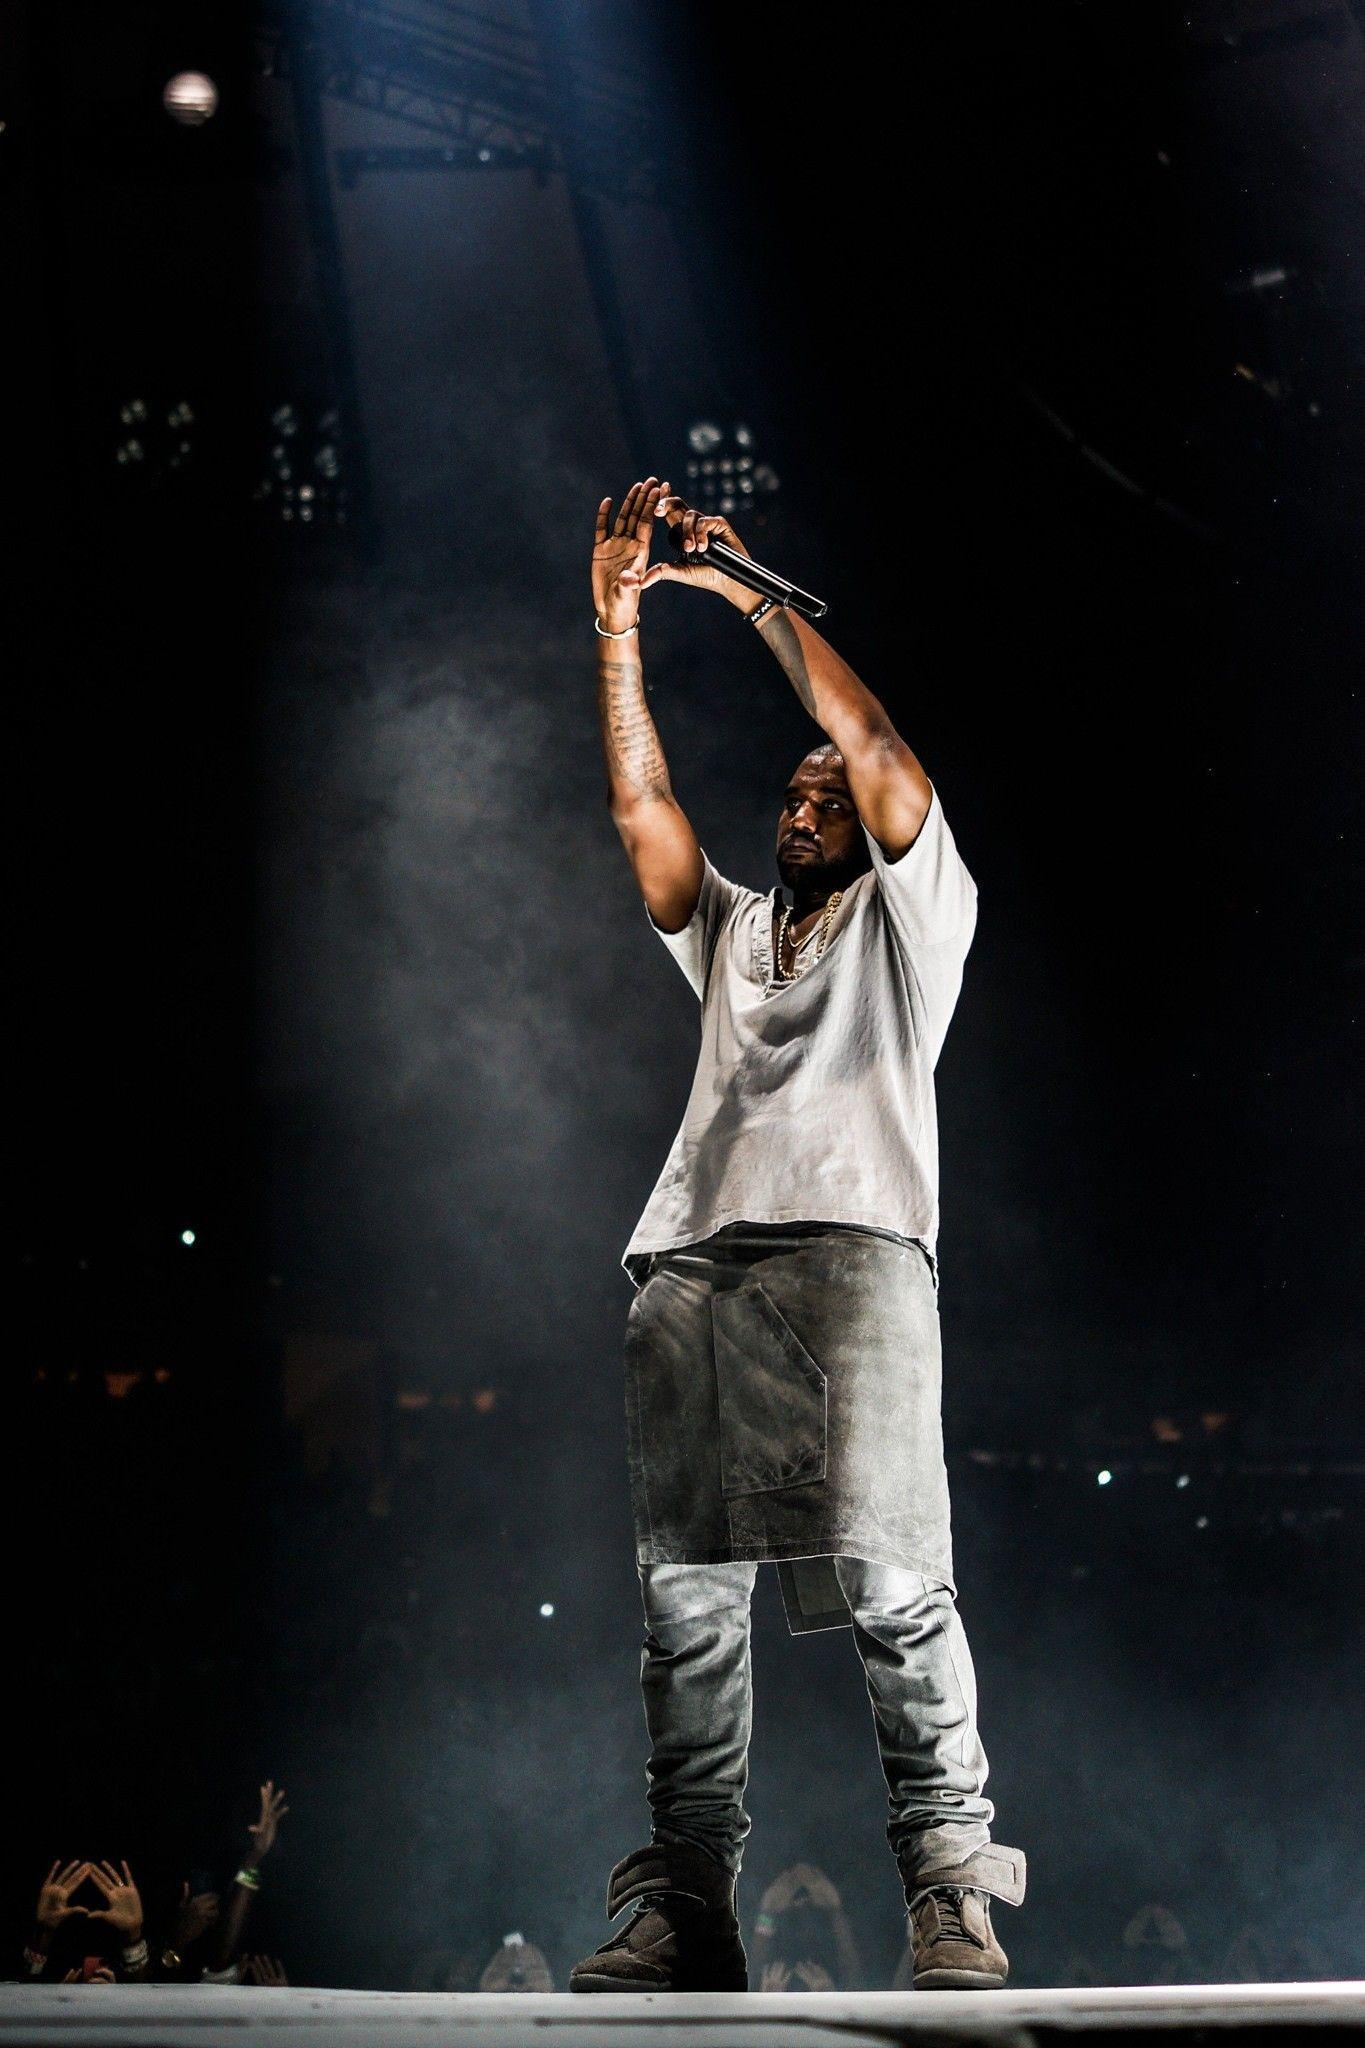 Yeezus, Kanye West Wallpapers HD / Desktop and Mobile Backgrounds